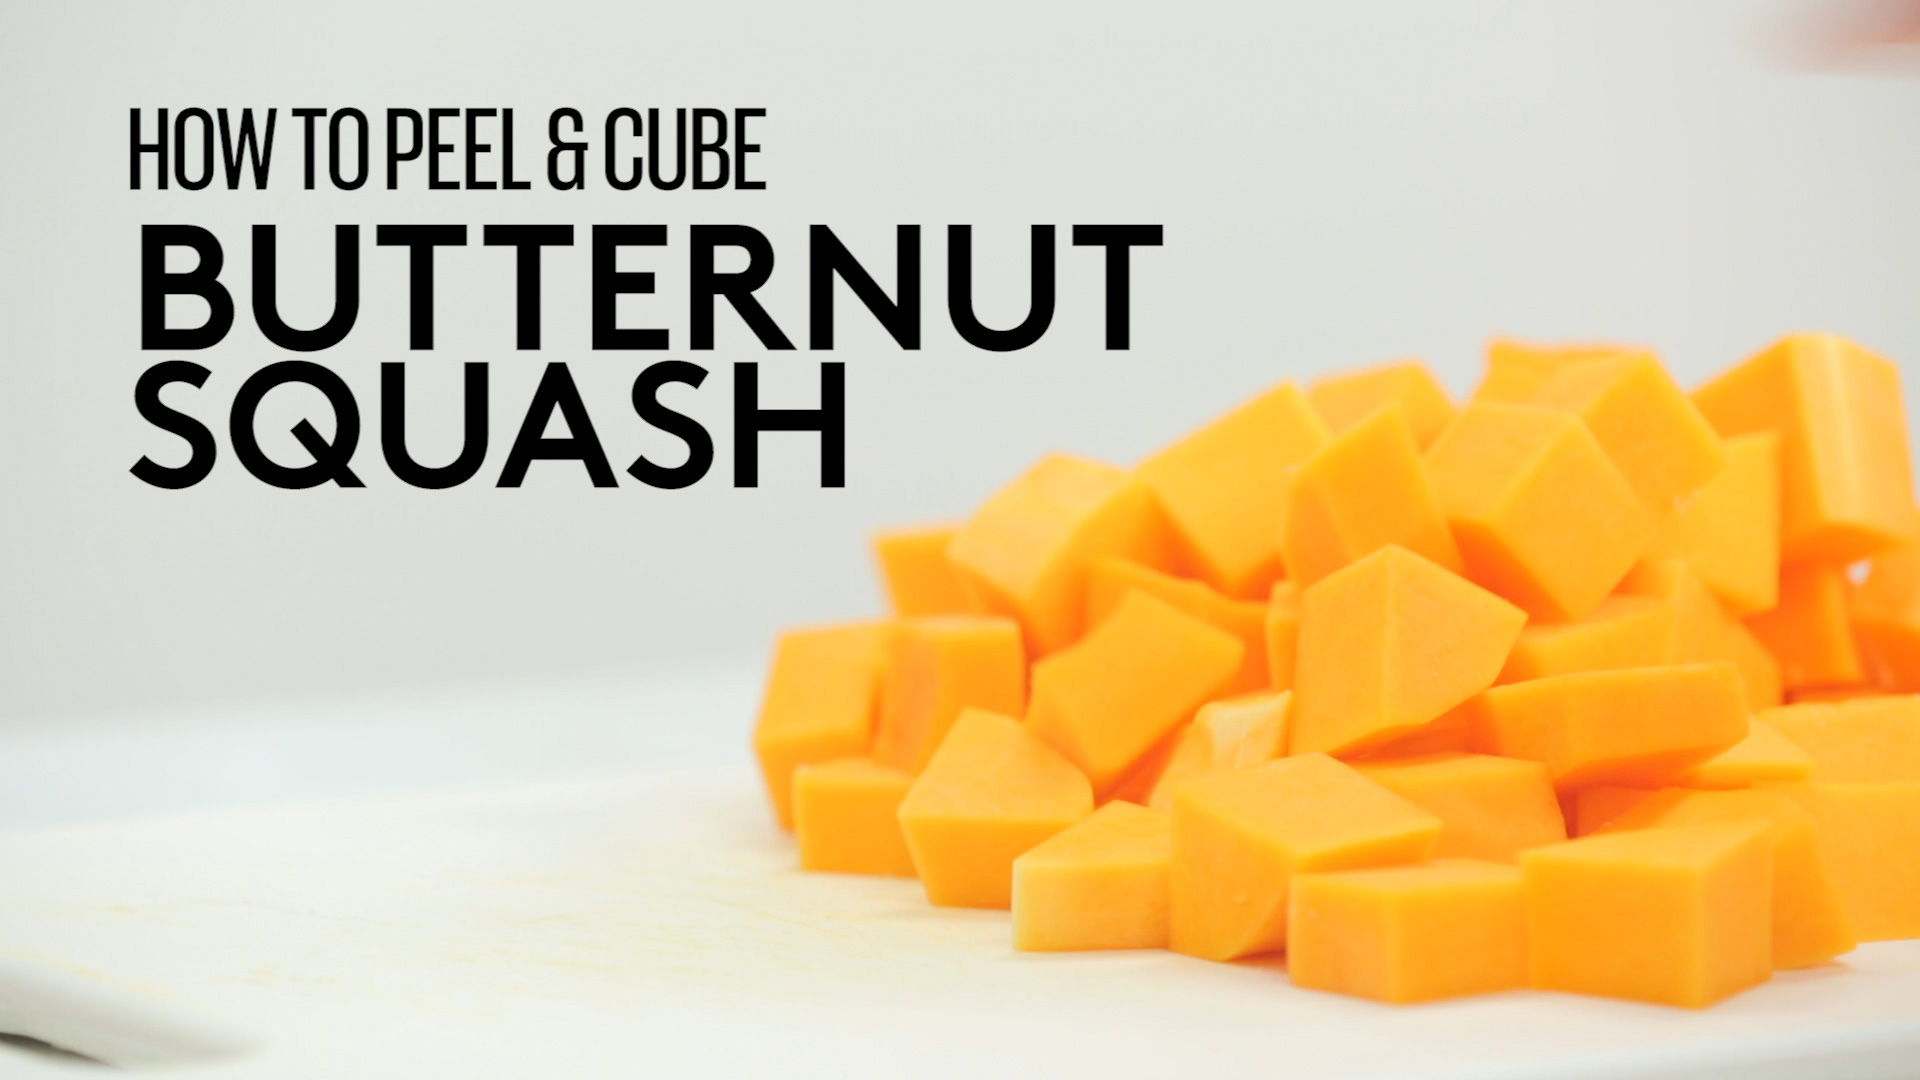 Related: The Easiest Way to Cut Winter Squash